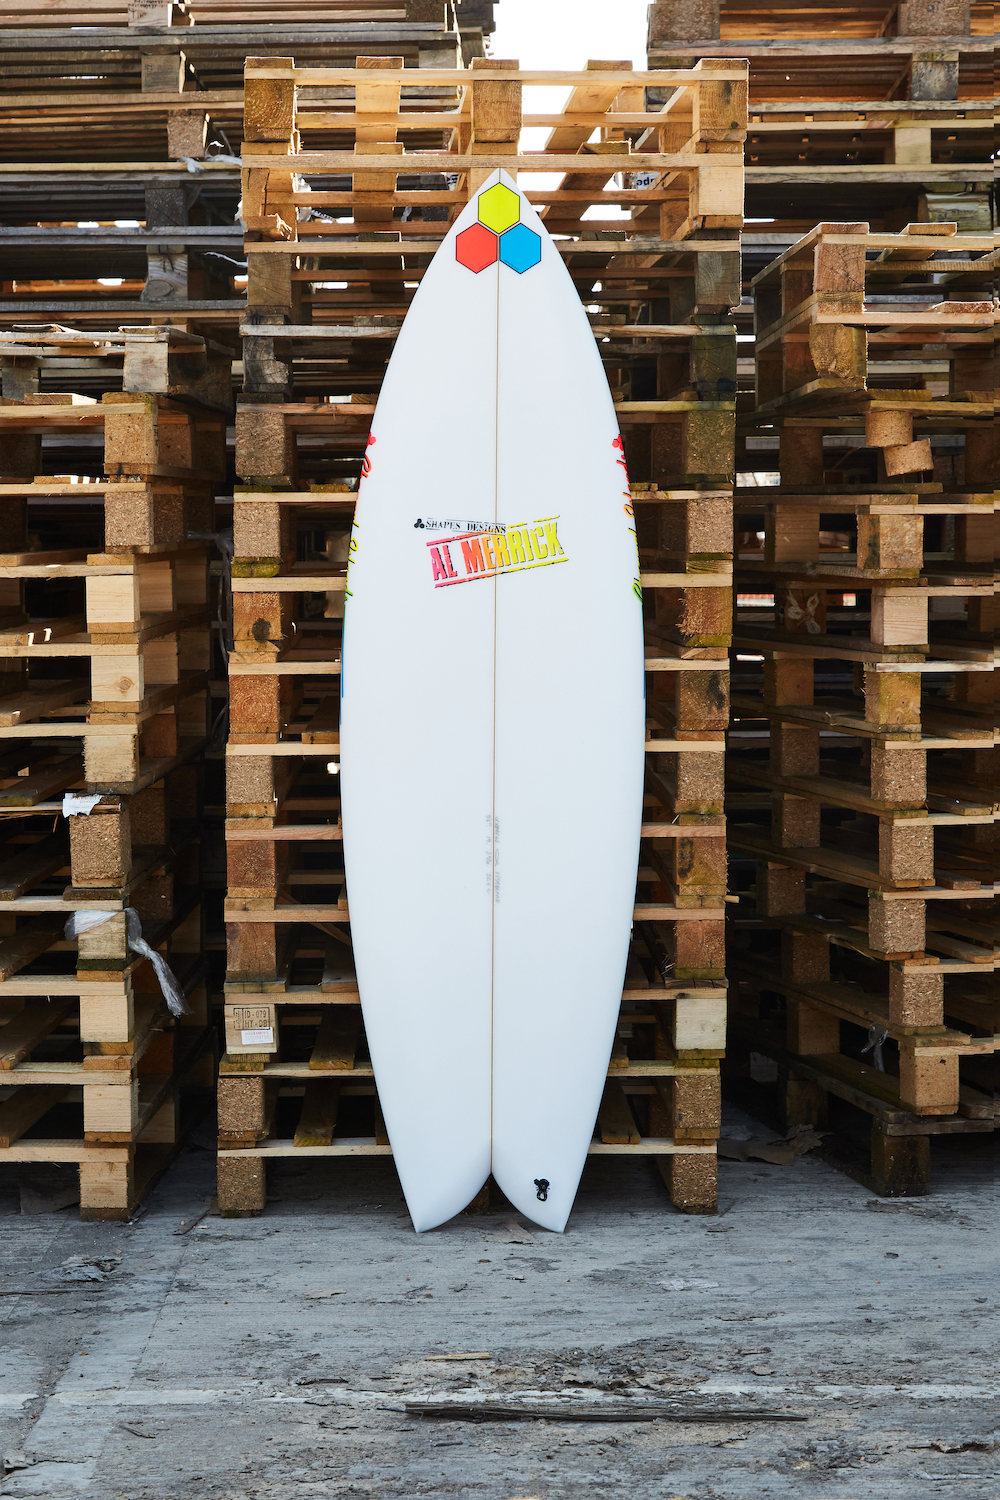 The FishBeard surfboard by Channel Islands Surfboards, as reviewed by Angus Scotney in the Test Tub surfboard review